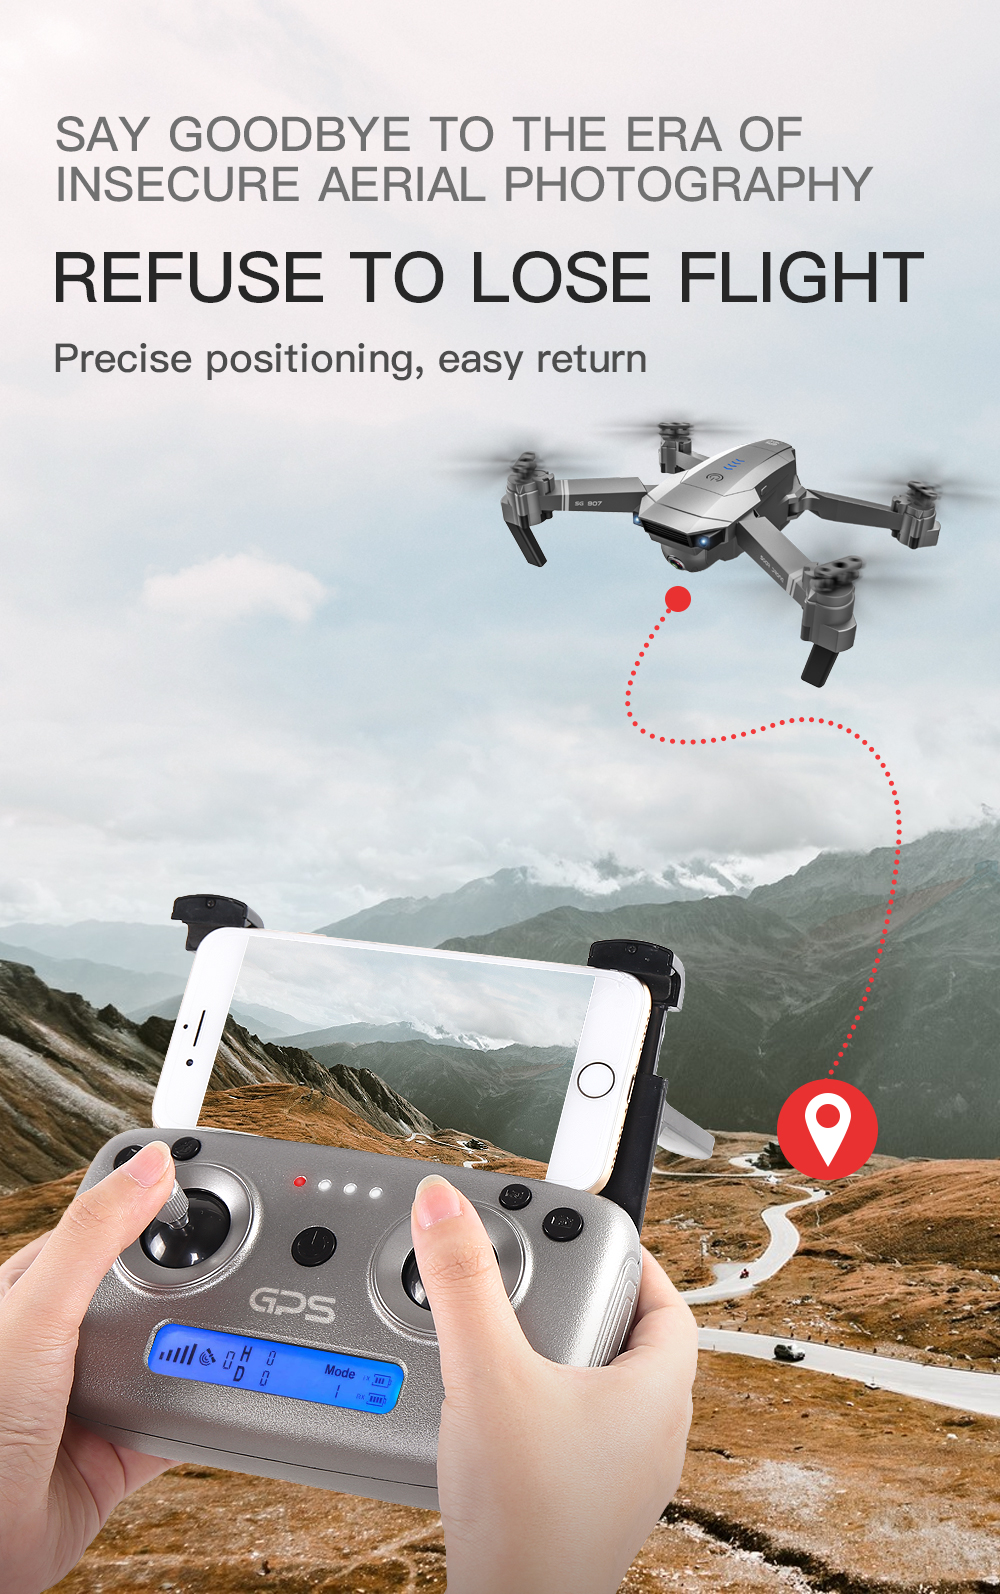 SG907 WIFI RC Quadcopter GPS Drone with 4K HD Dual Camera for Wide Angle Video Shooting 19